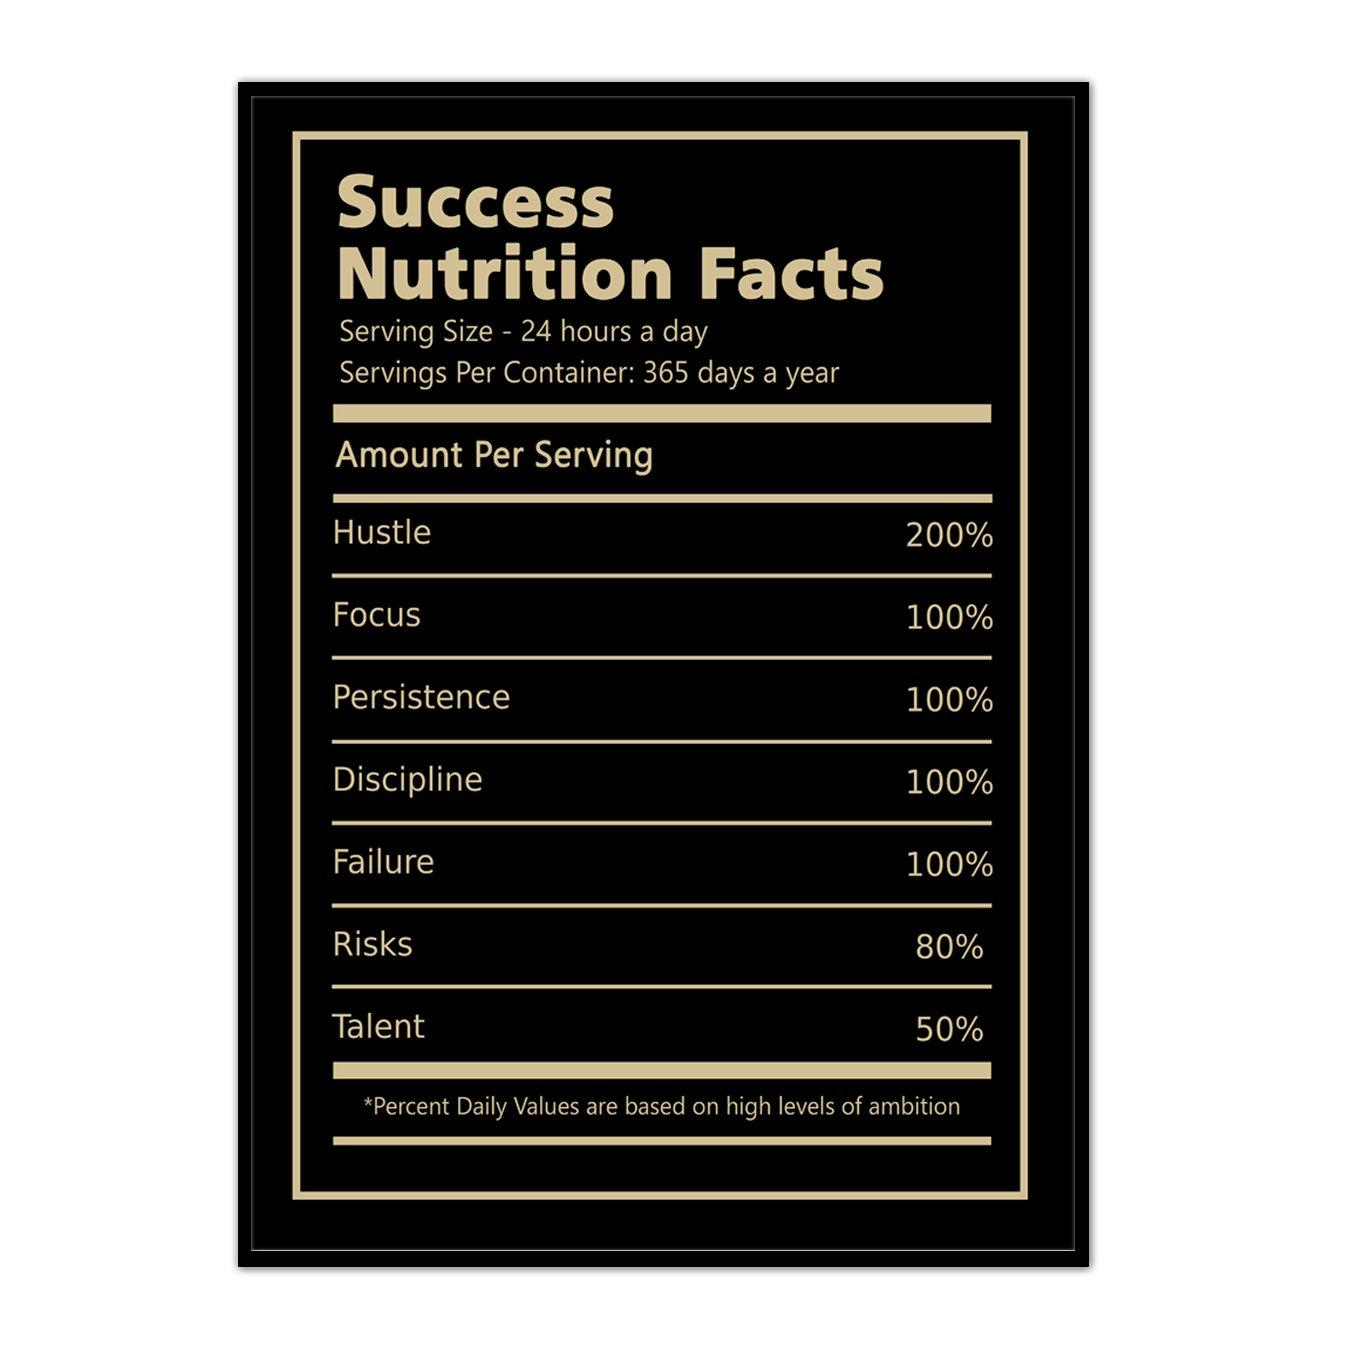 Success Nutrition Facts - Canvasist